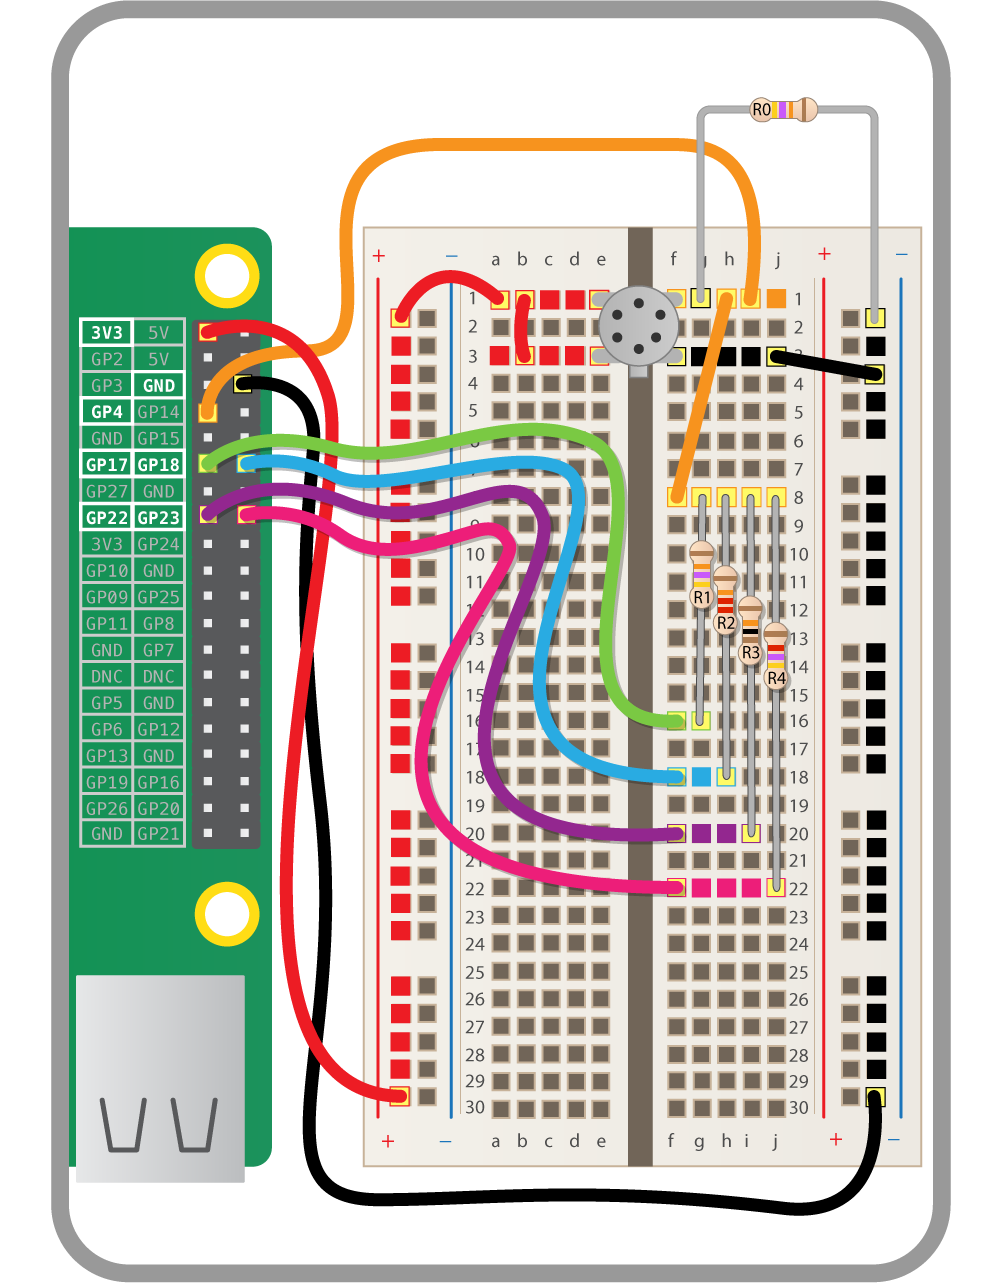 Fart Detector Build A Resistor Ladder Dac Raspberry Pi Projects Resistors In Series Connected This Is Just To Expand The Number Of Holes That Are Pin 2 Air Quality Sensor Allowing Us Set Off Each Make Up